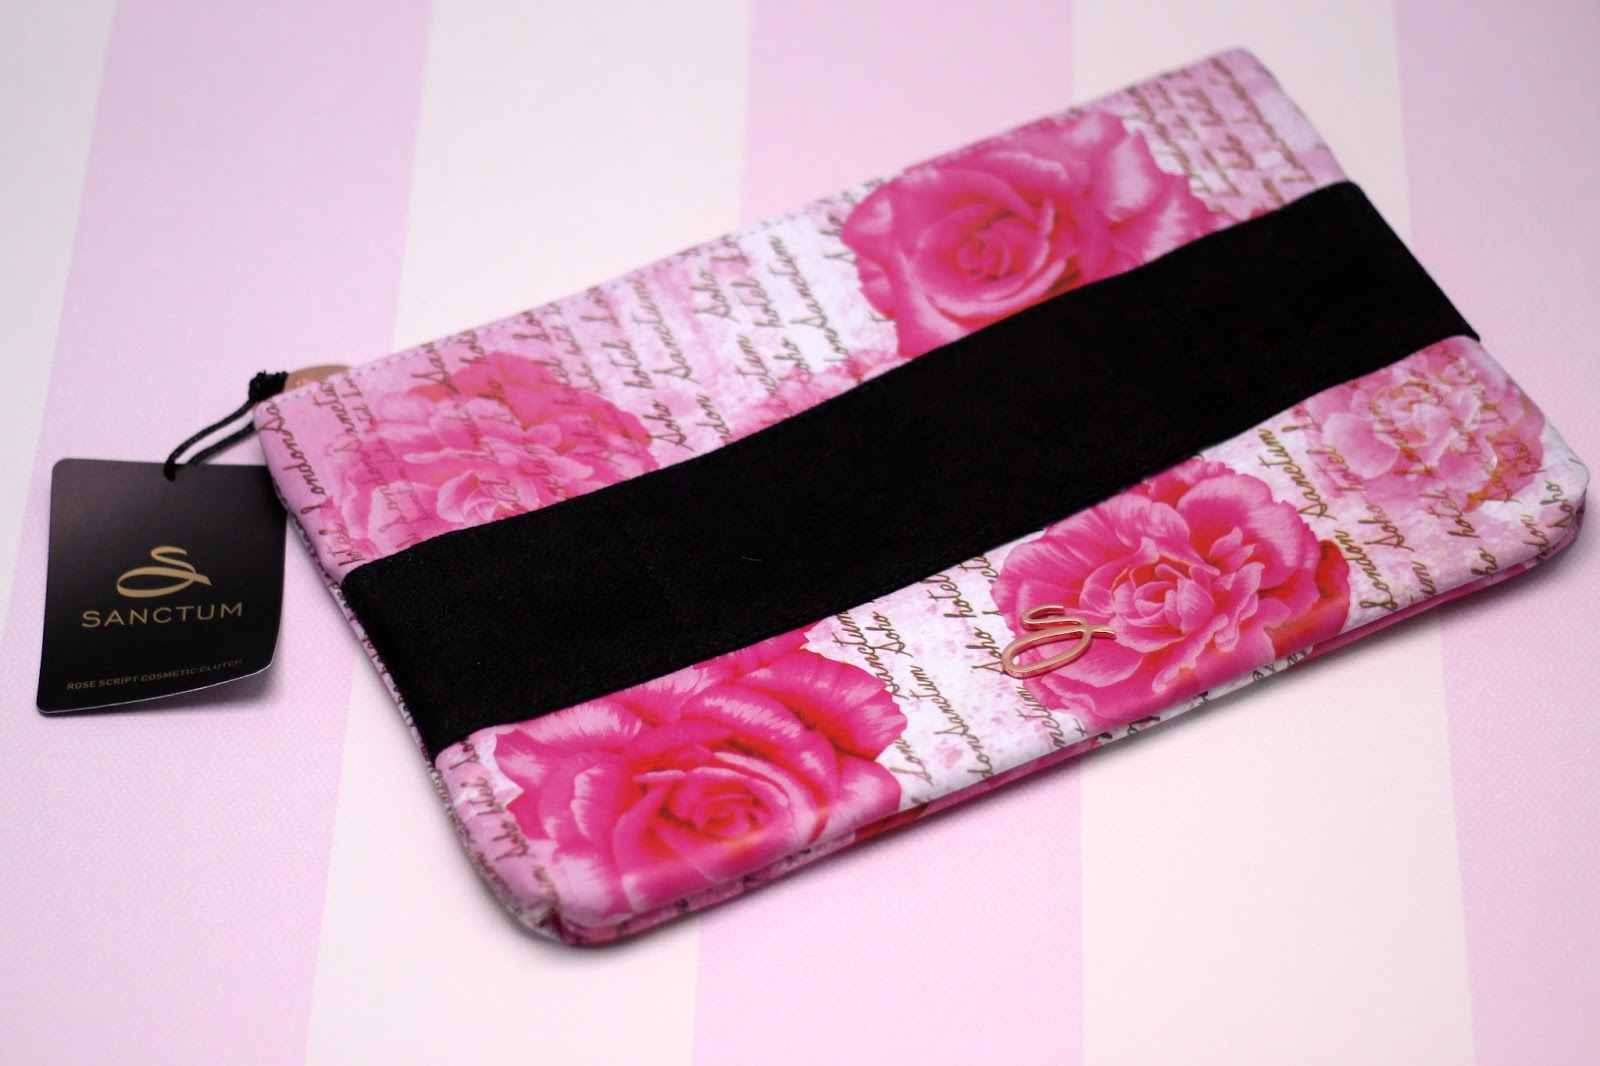 Mother's Day Gift Guide; The Rose Script Collection for Sanctum by DanGold